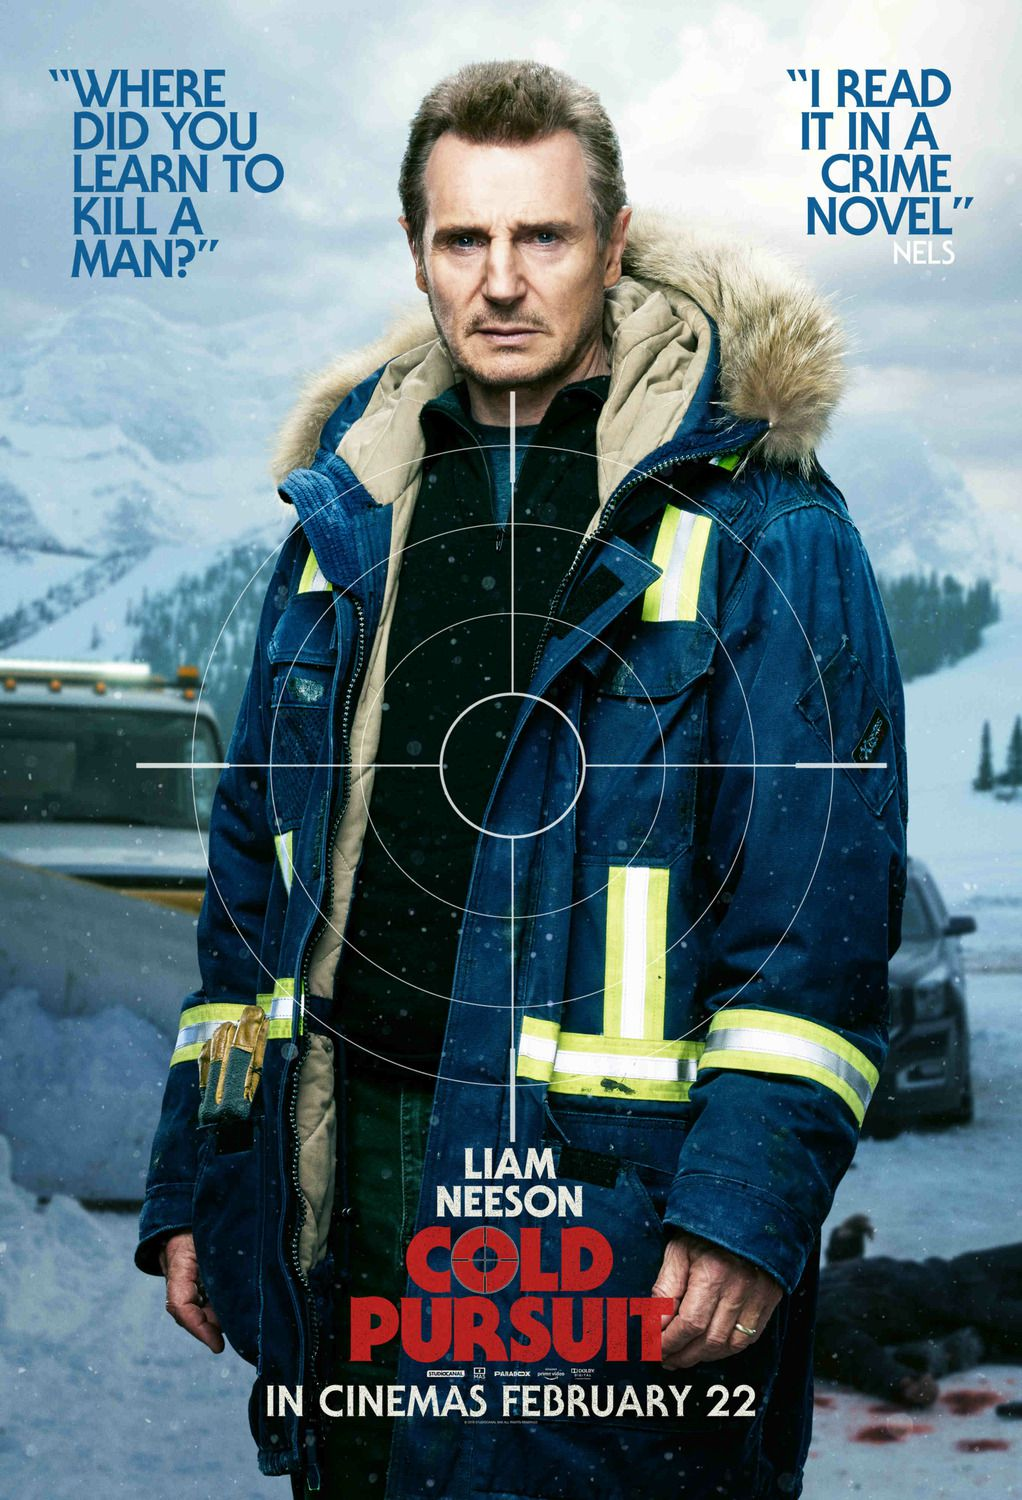 Liam Neeson - Where did you learn to kill a man - I read it ina crime novel Nels